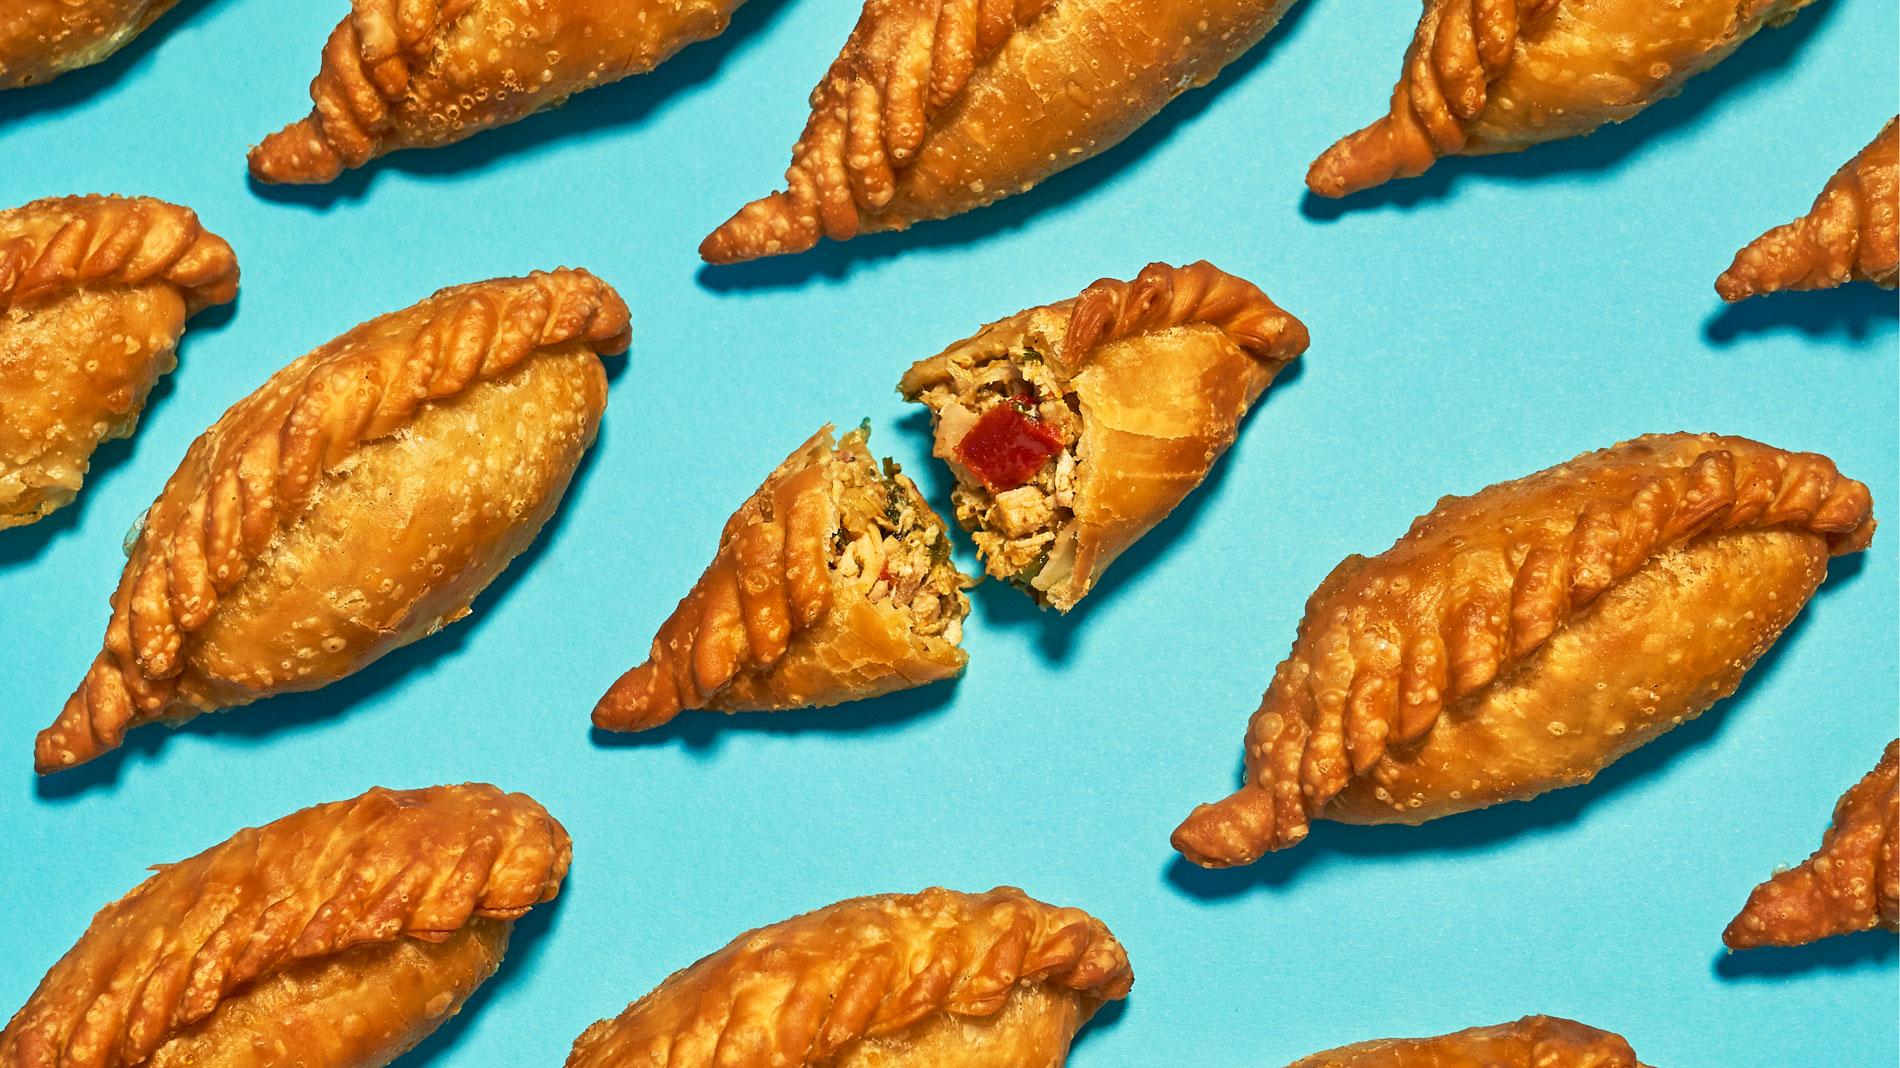 several empanadas lined up diagonally on a blue background